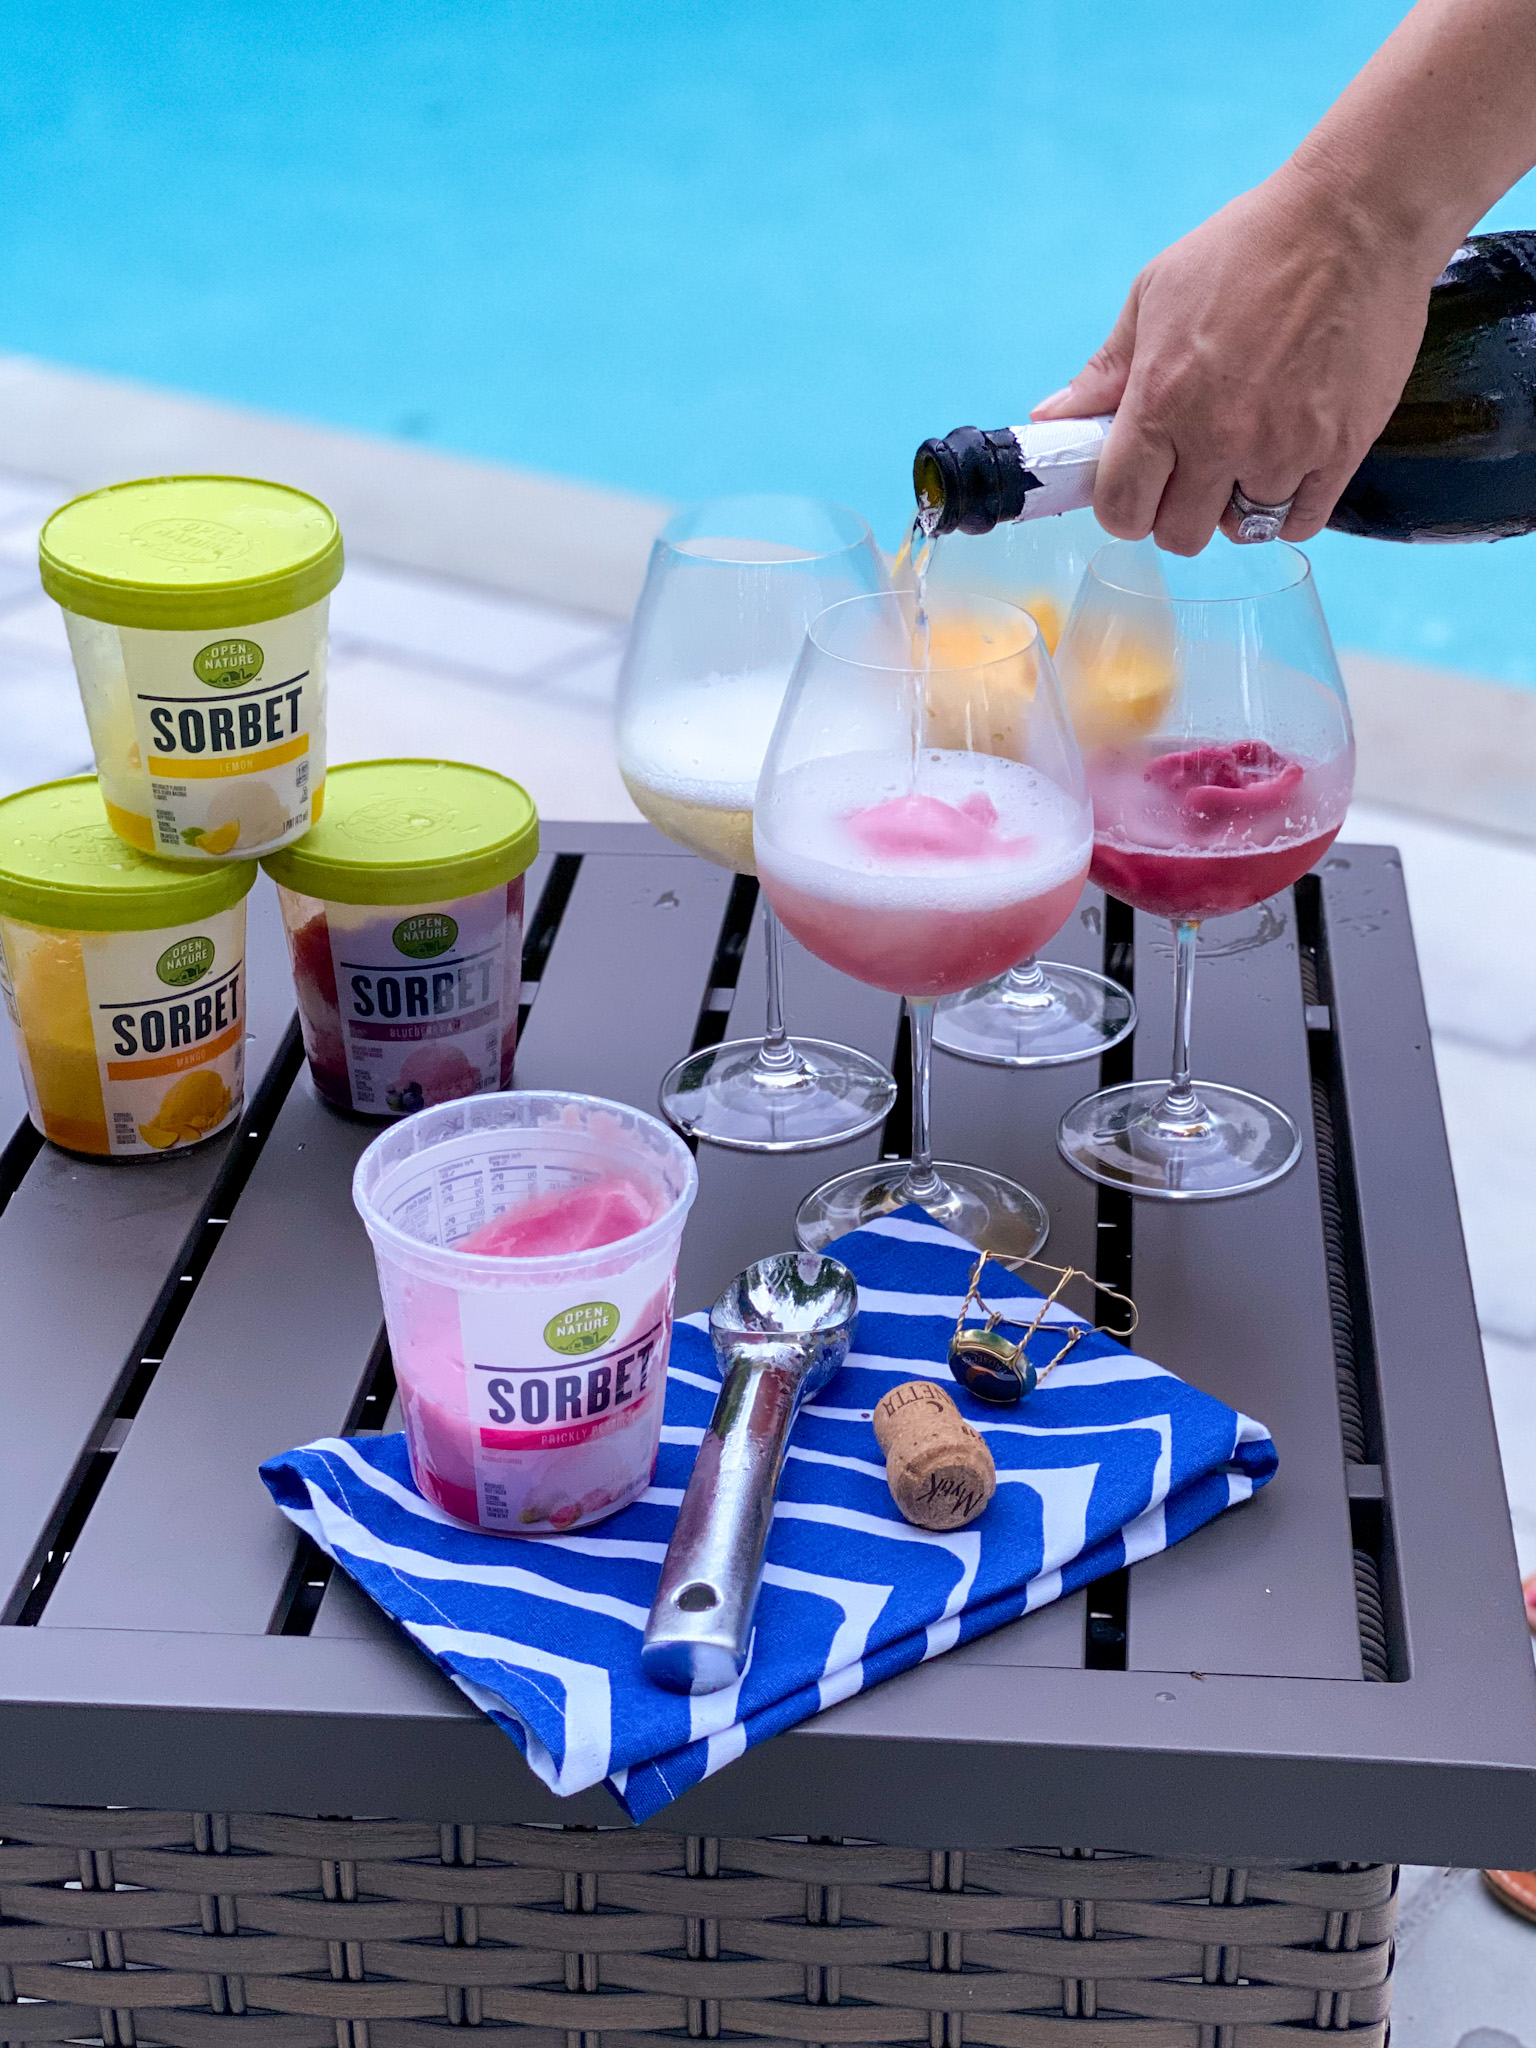 Prosecco & Sorbet Floats with Shaw's Open Nature Sorbet